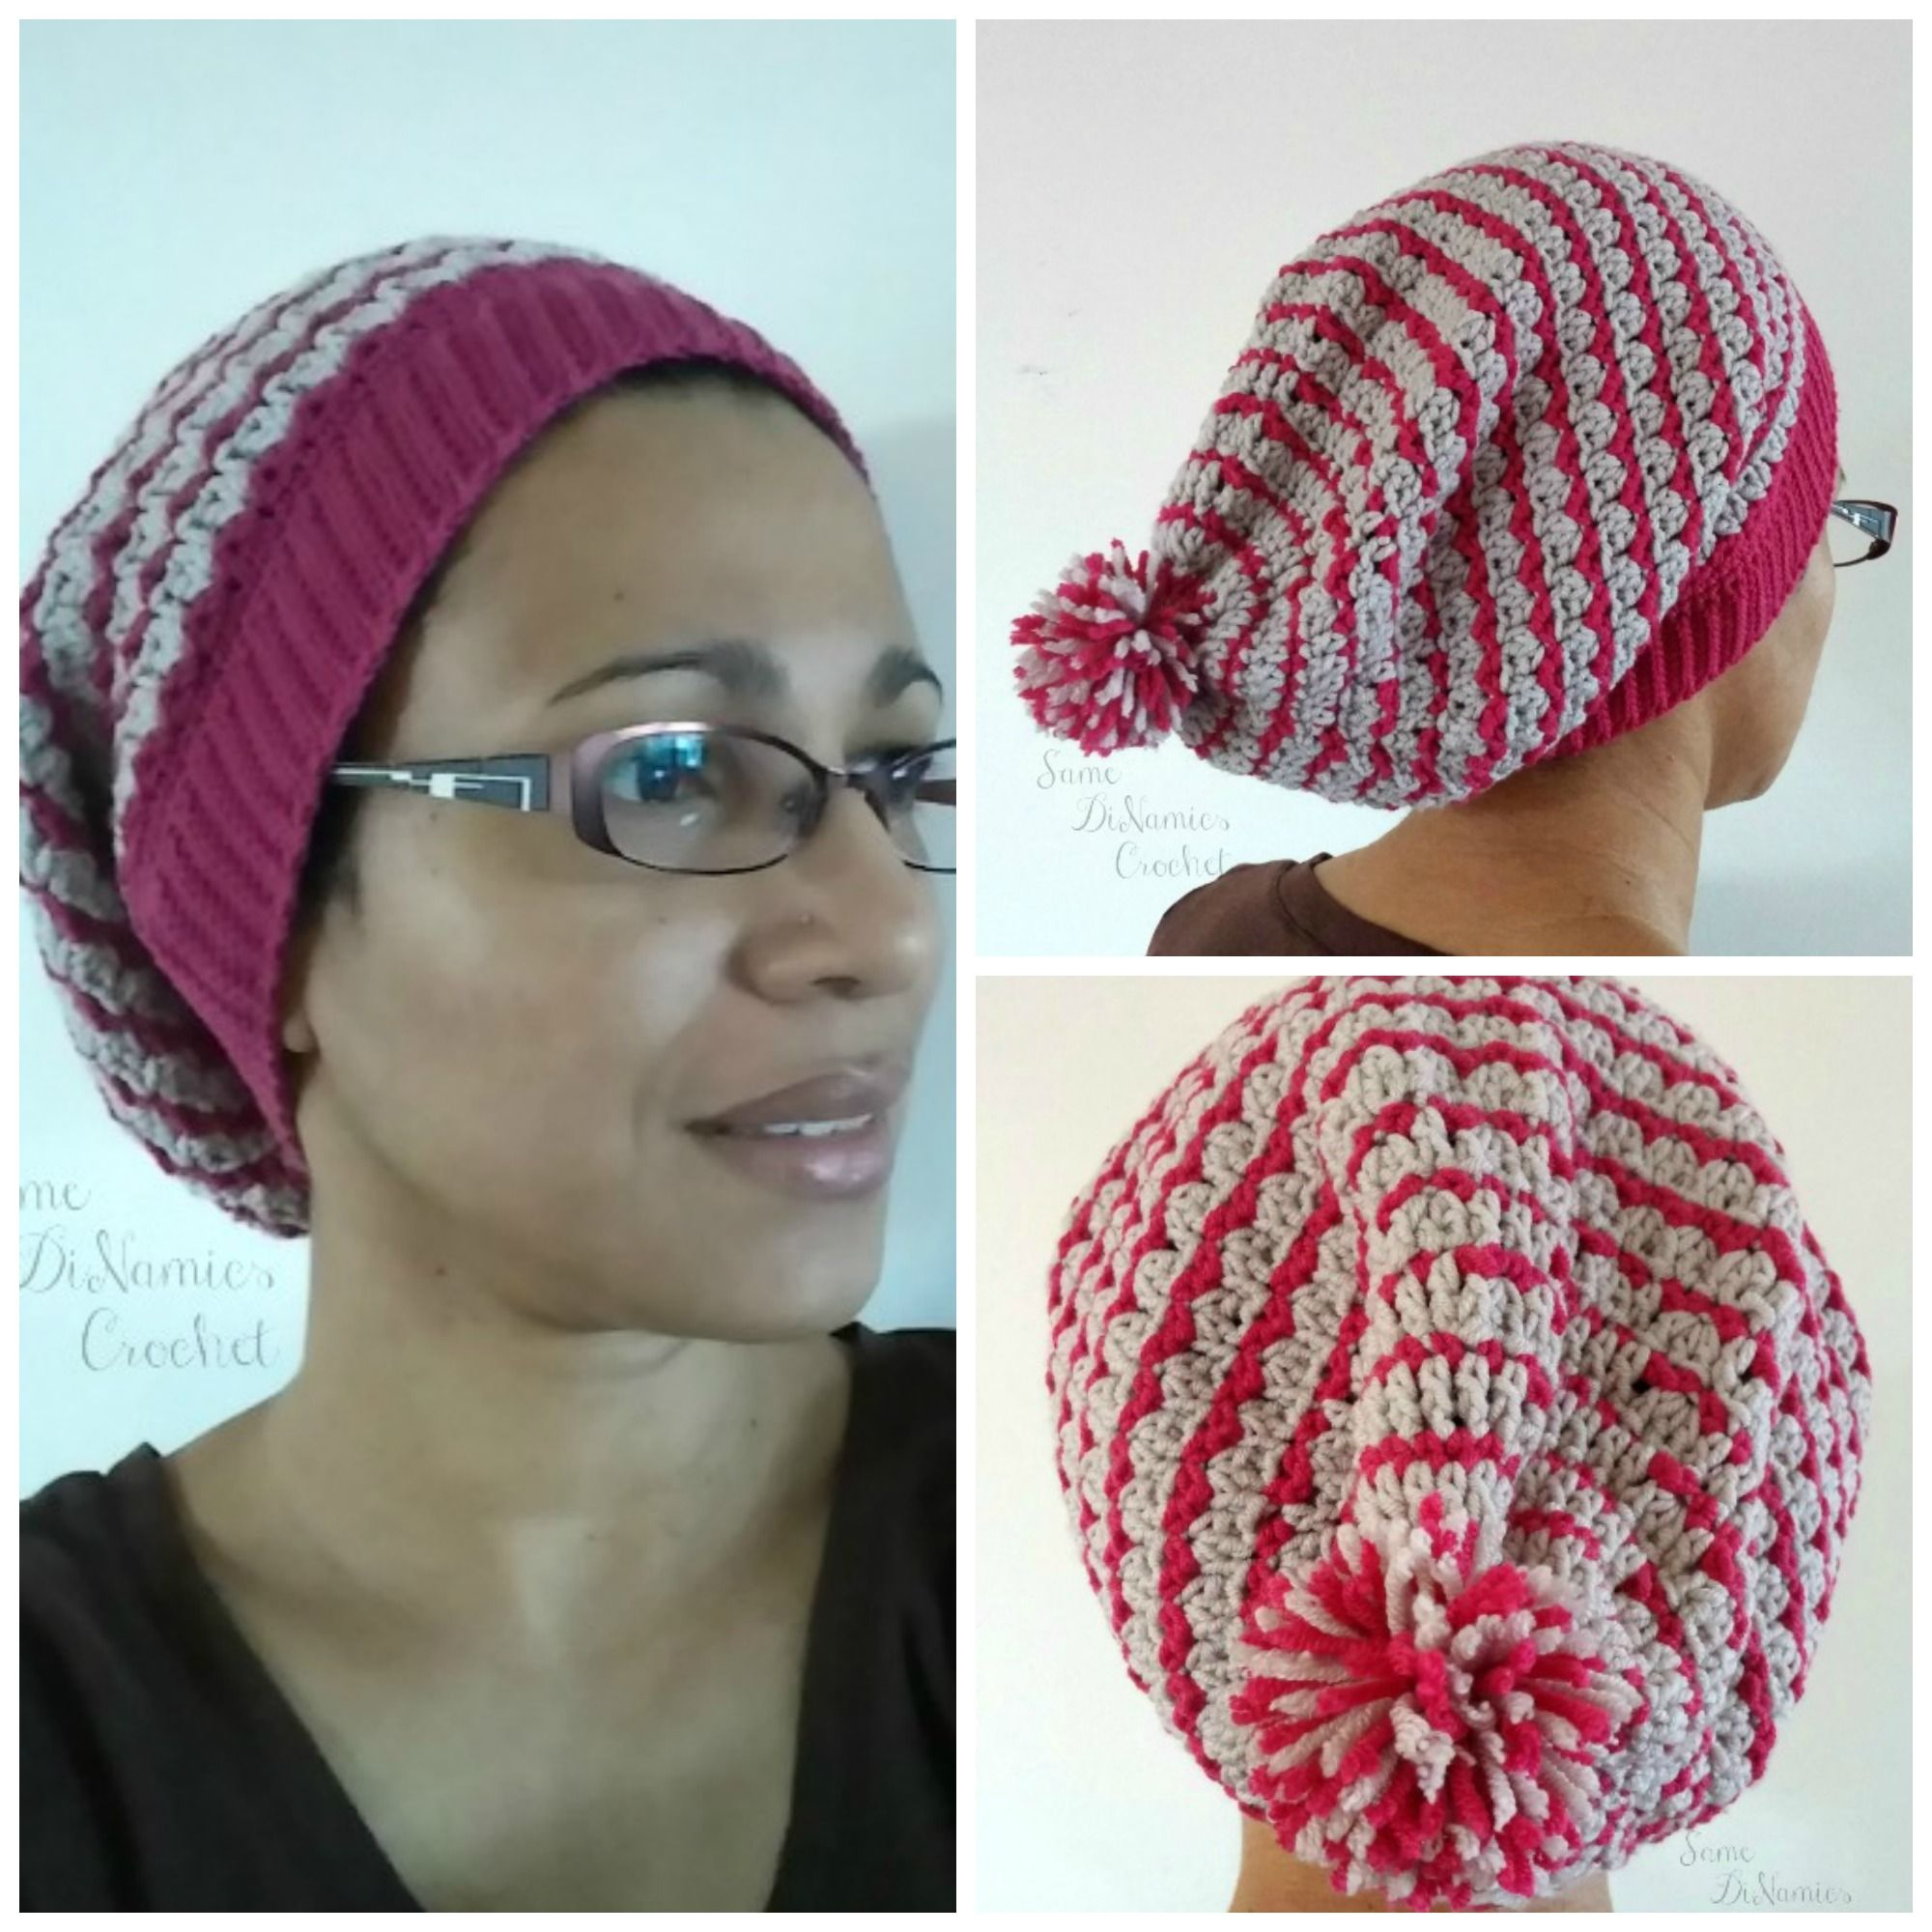 9e29cd2e2ec Bon Bon Kisses Slouchy Hat free crochet pattern The Bon Bon Kisses Slouchy  Hat is soft and will keep your head warm. It fits snug and comfortable on  your ...